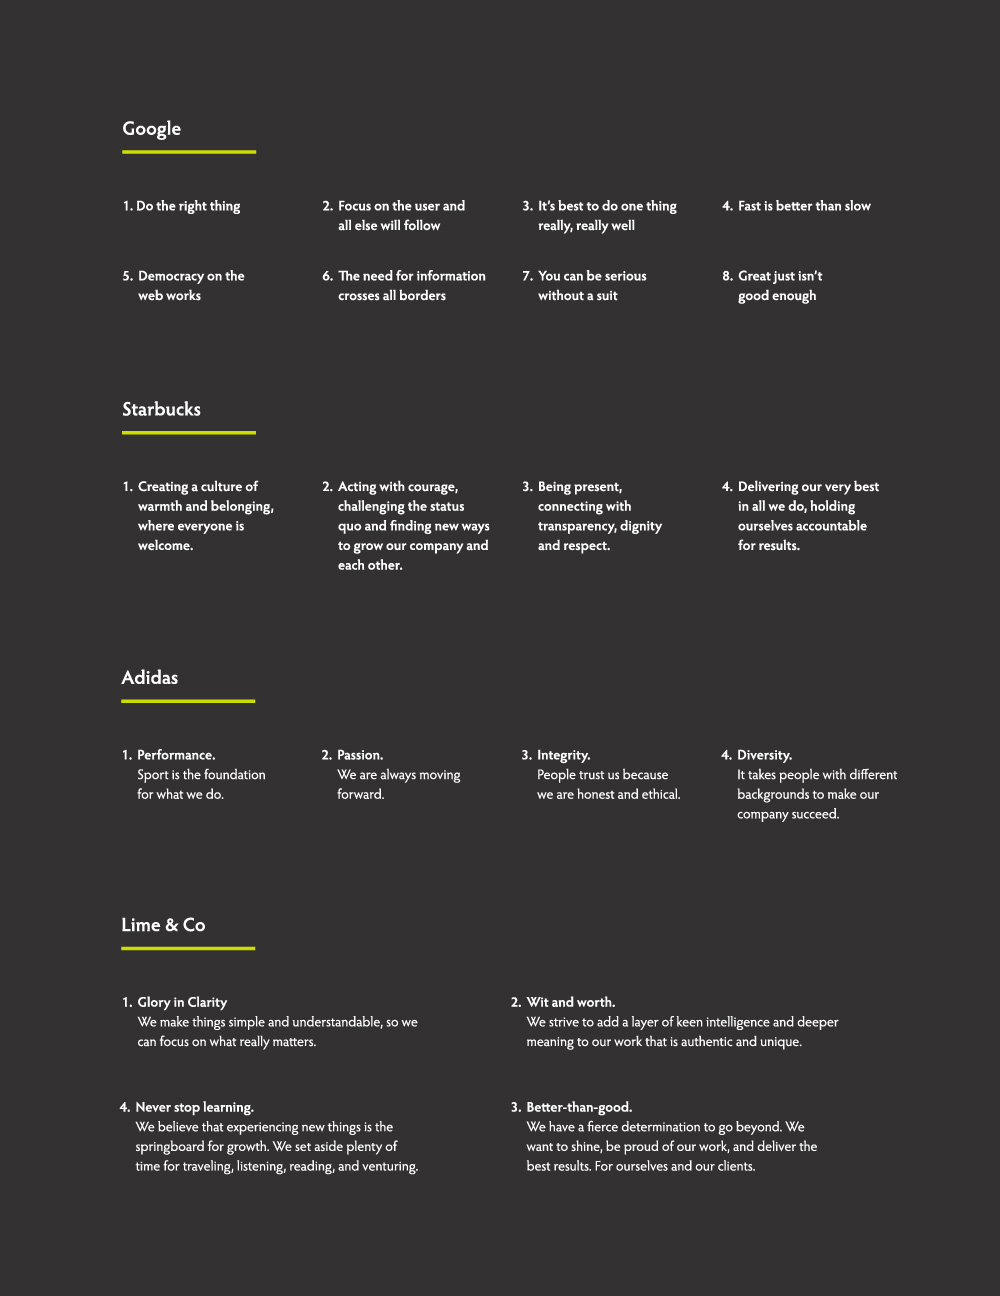 Brand Values samples by Google, Starbucks, Adidas, Lime&Co